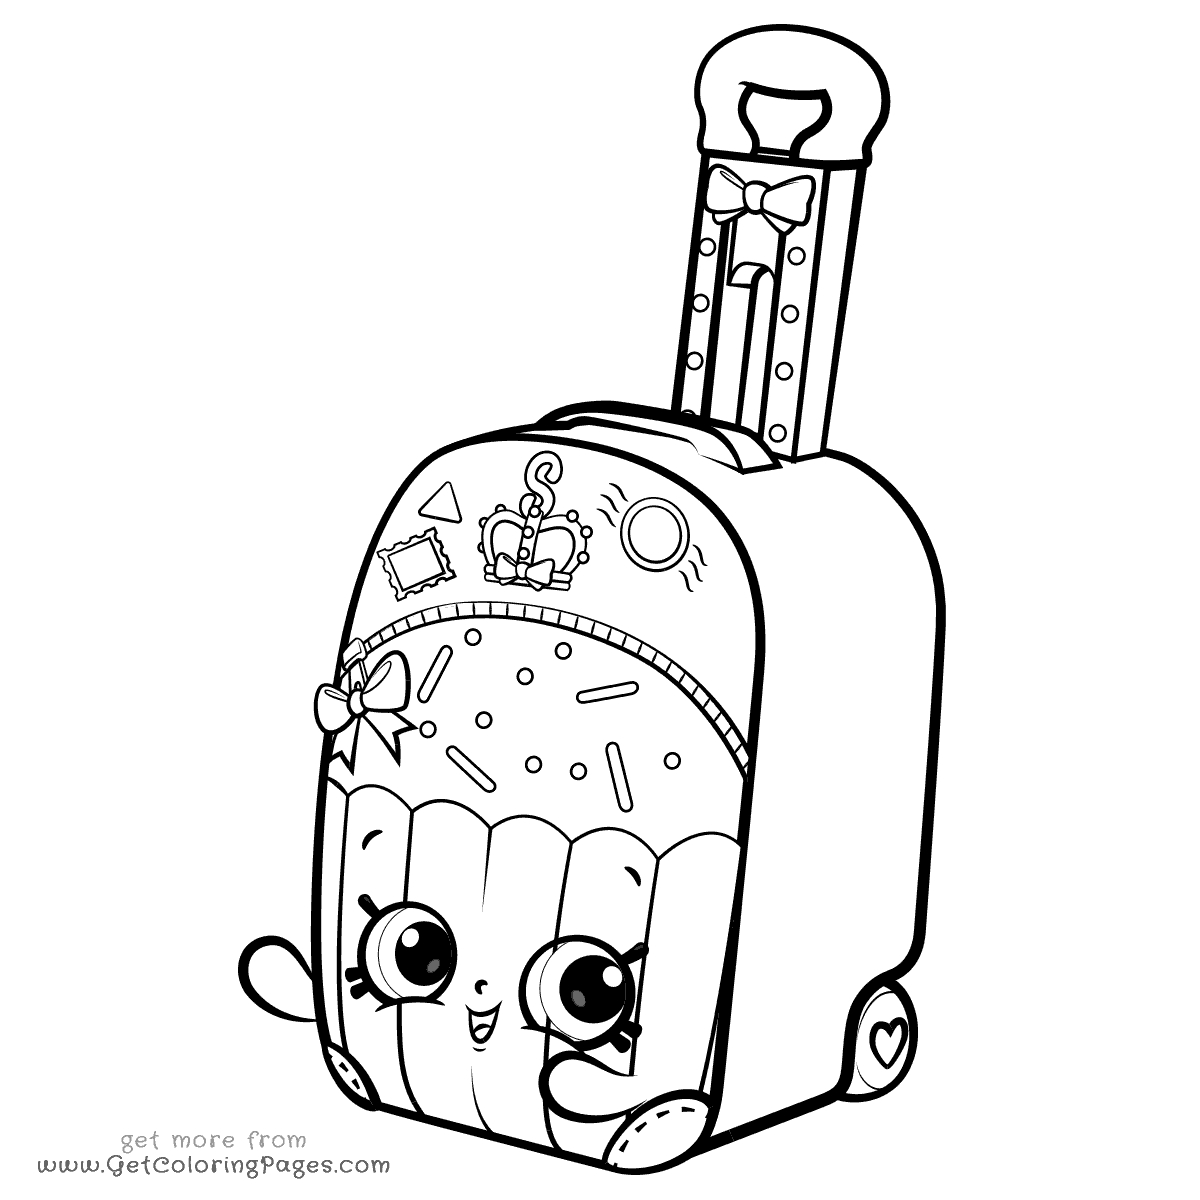 Shopkins Shoppies Coloring Pages - Coloring Pages Shoppies